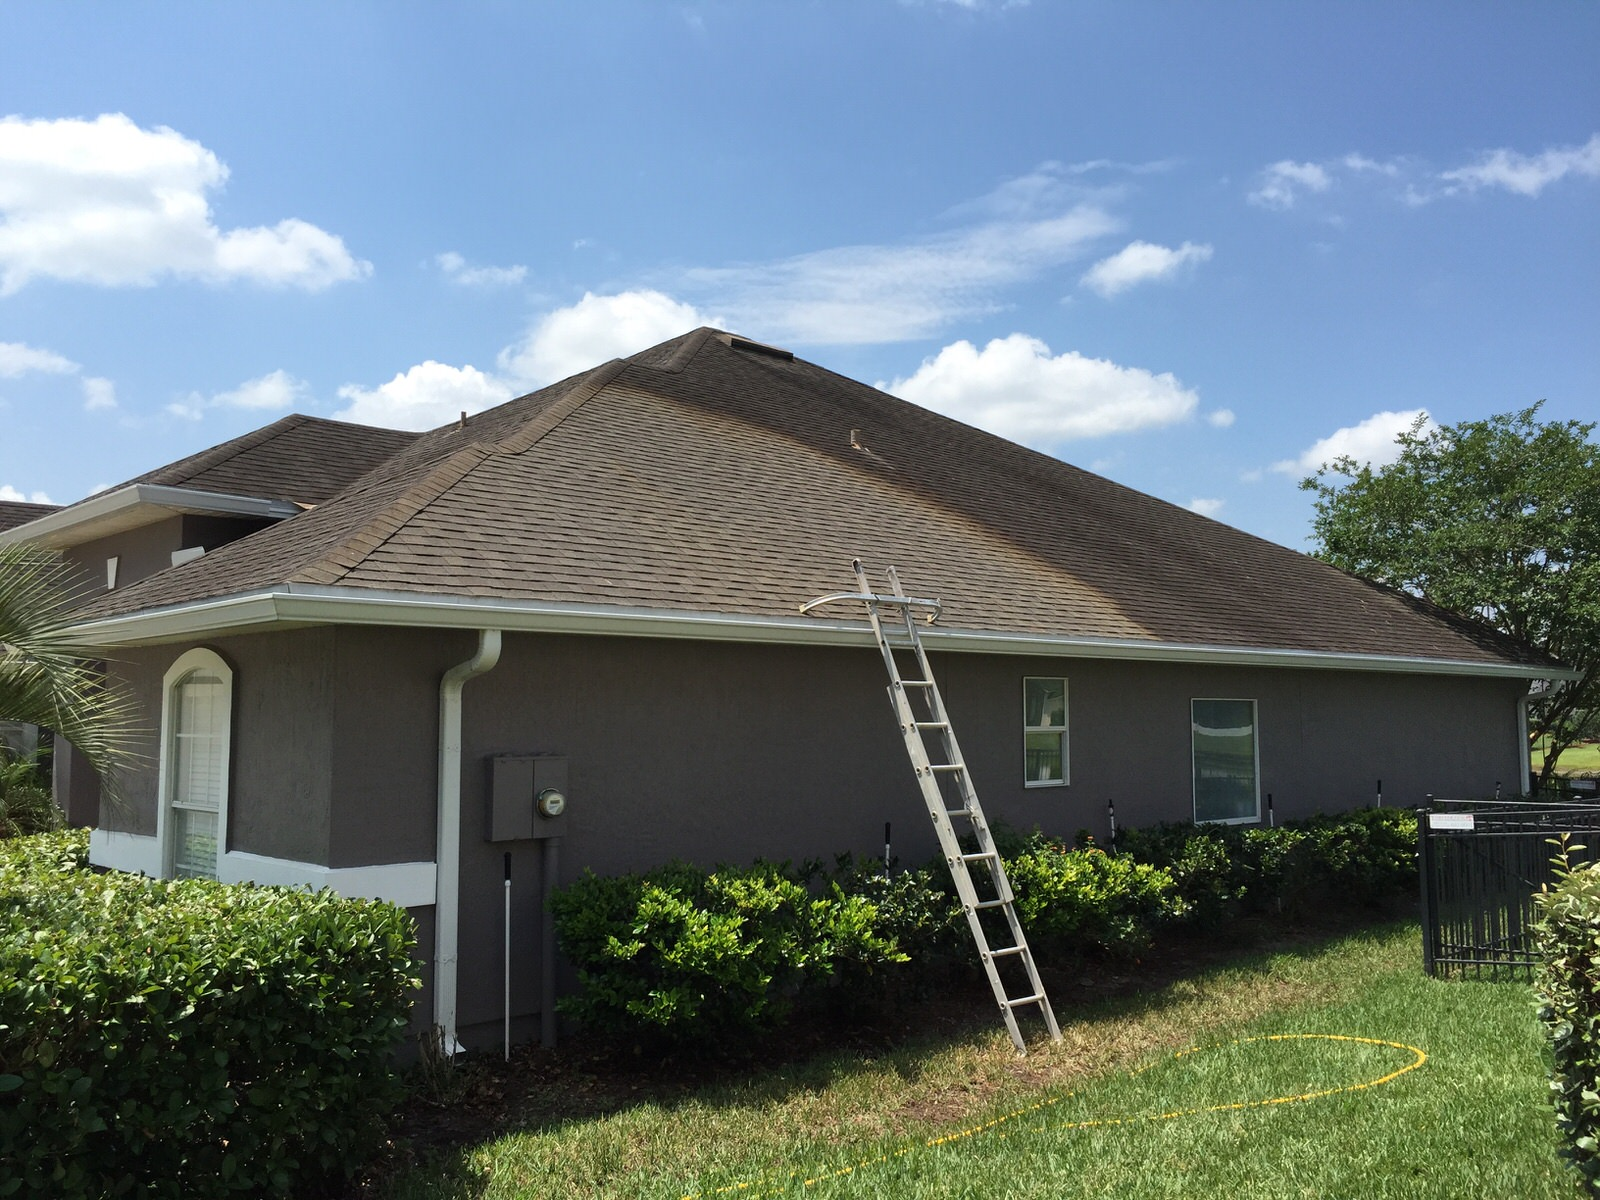 Asphalt Shingle Roof Cleaning In Progress